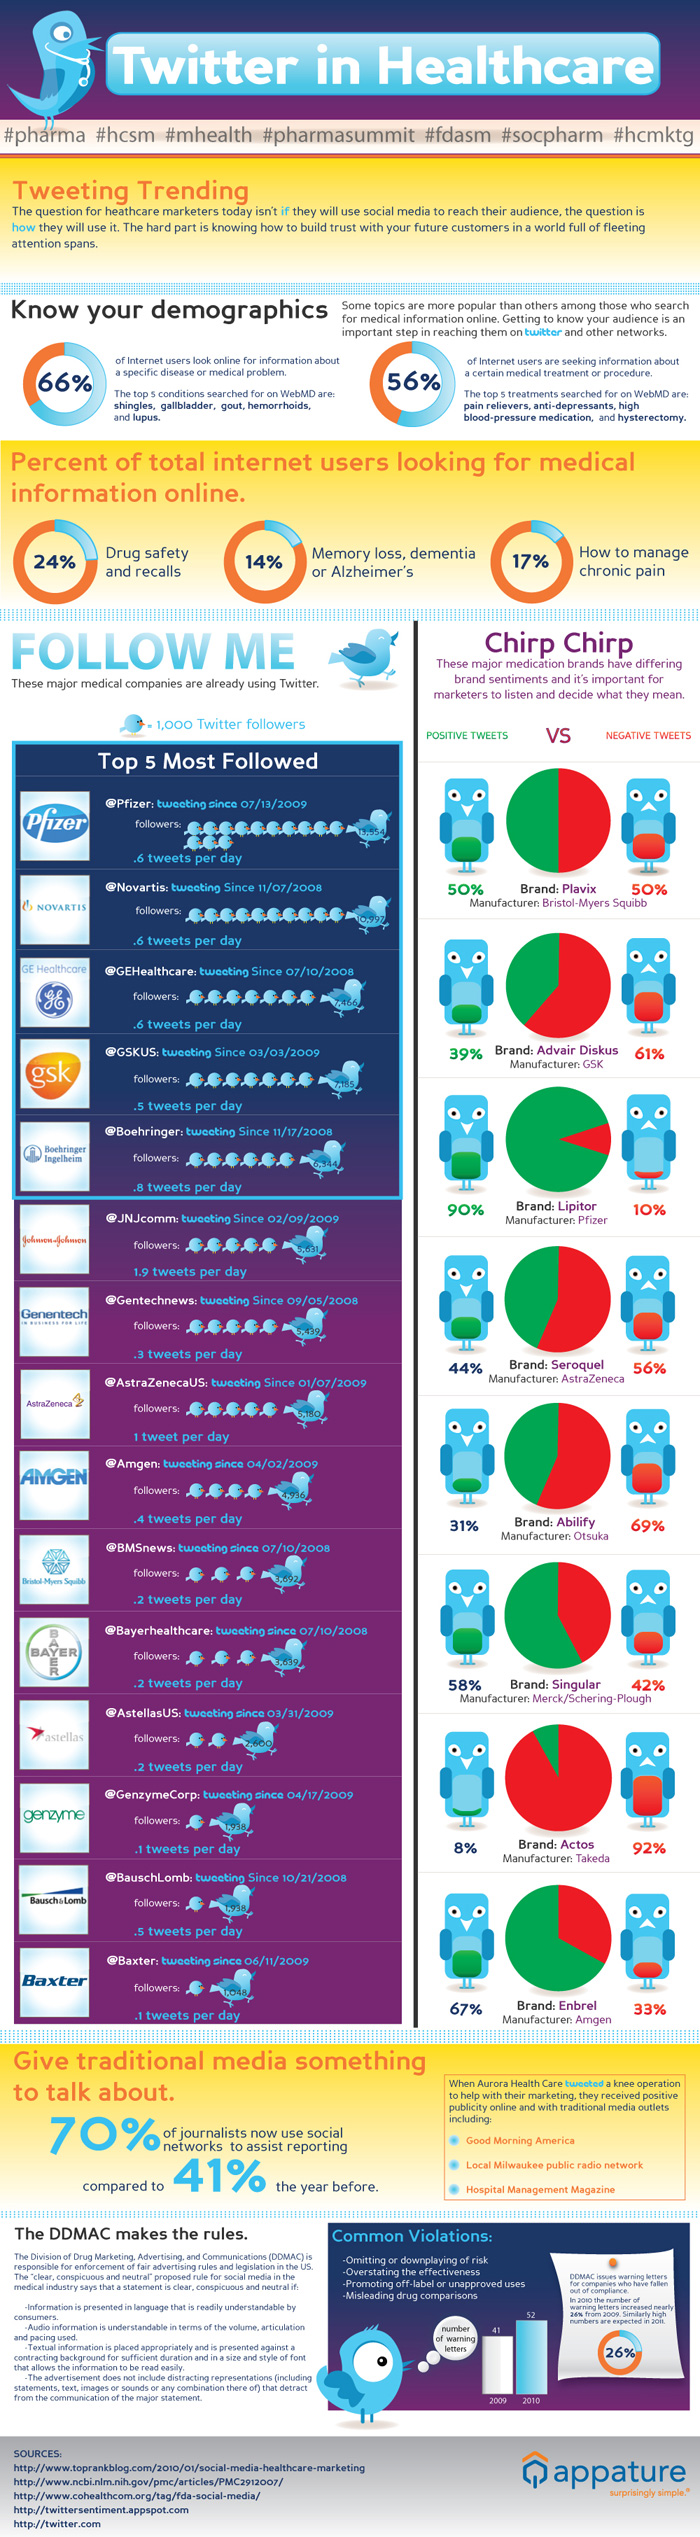 infographic-twitter-in-healthcare-HealthIT-infographic